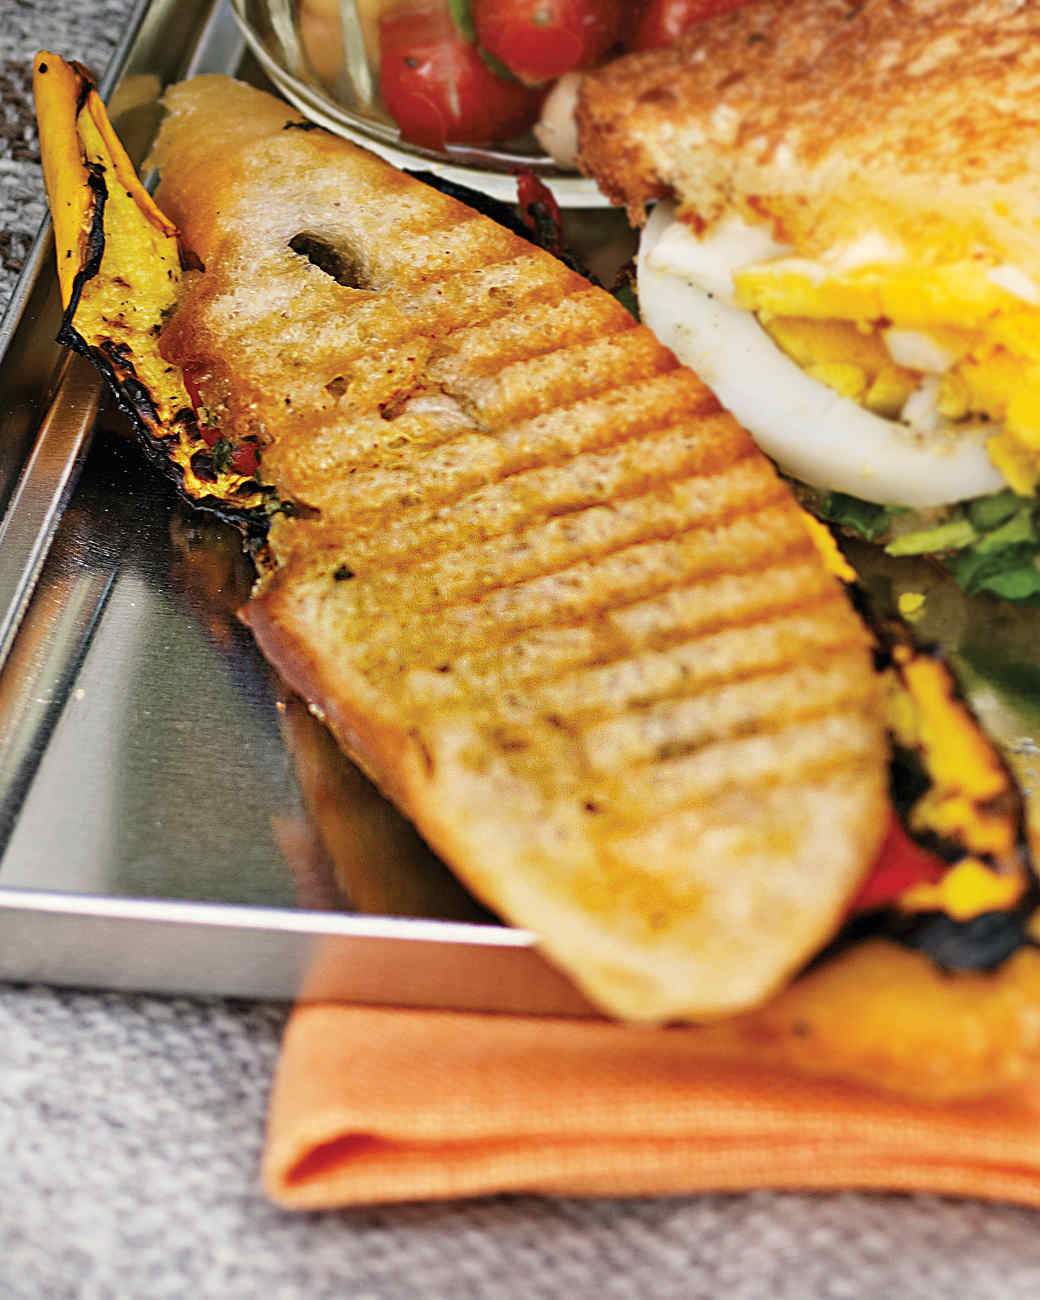 Vegetable panini recipes easy